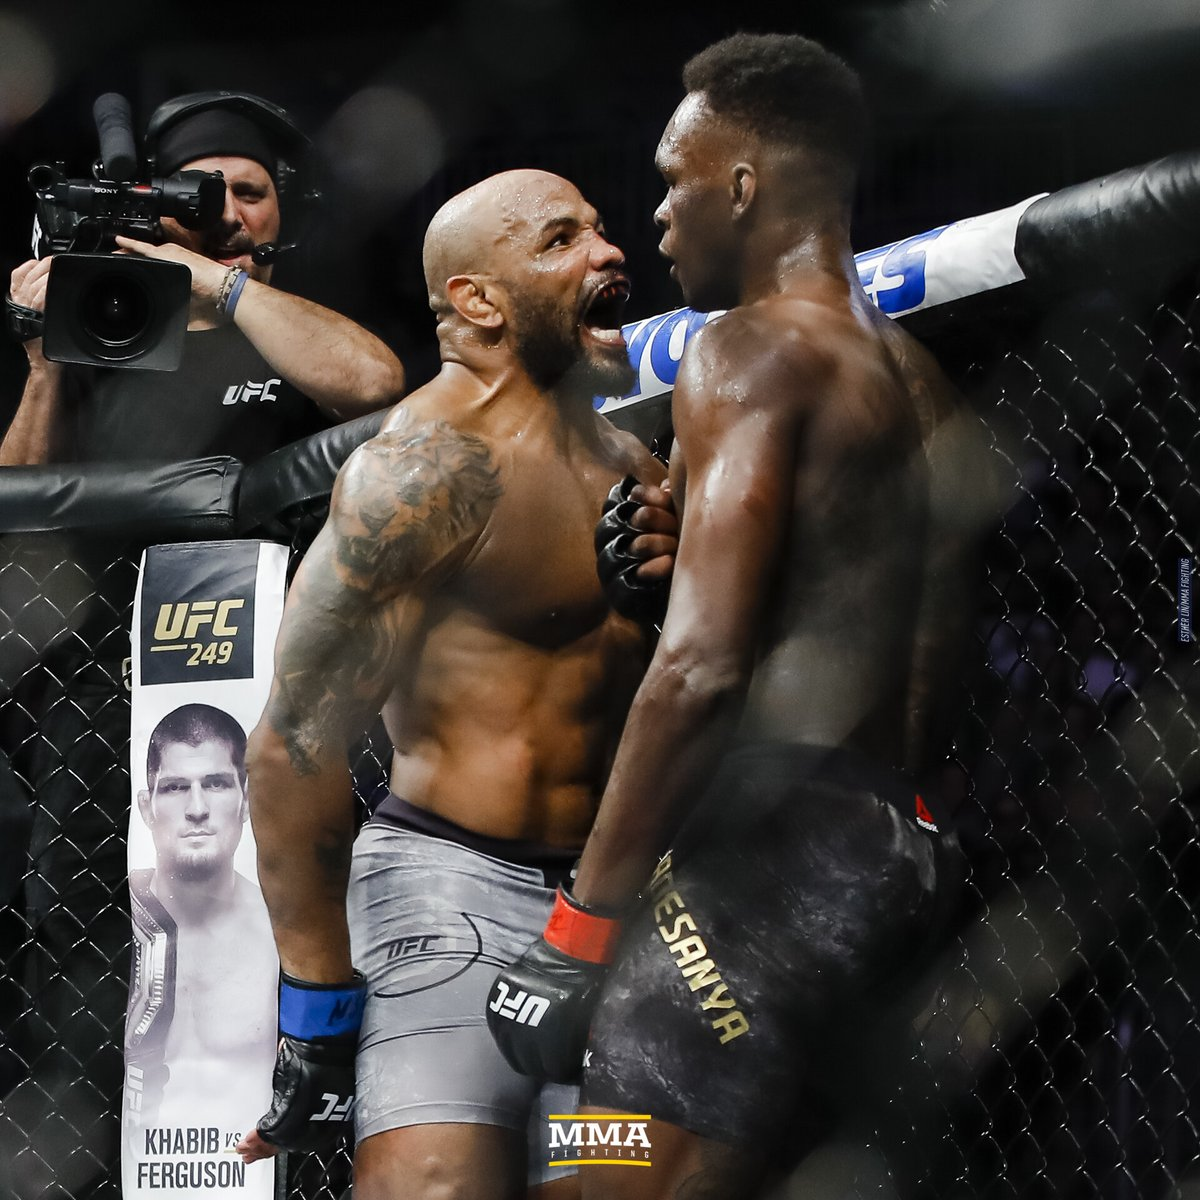 Doing the asset pulling for our #Timeline series always helps me revisit photos I've taken. This one from #UFC248 I love not just for the yelling but that the cameraman, Nick, is also reacting [bonus of cursed Khabib-Ferguson art in the BG]. https://t.co/LElq5zty01